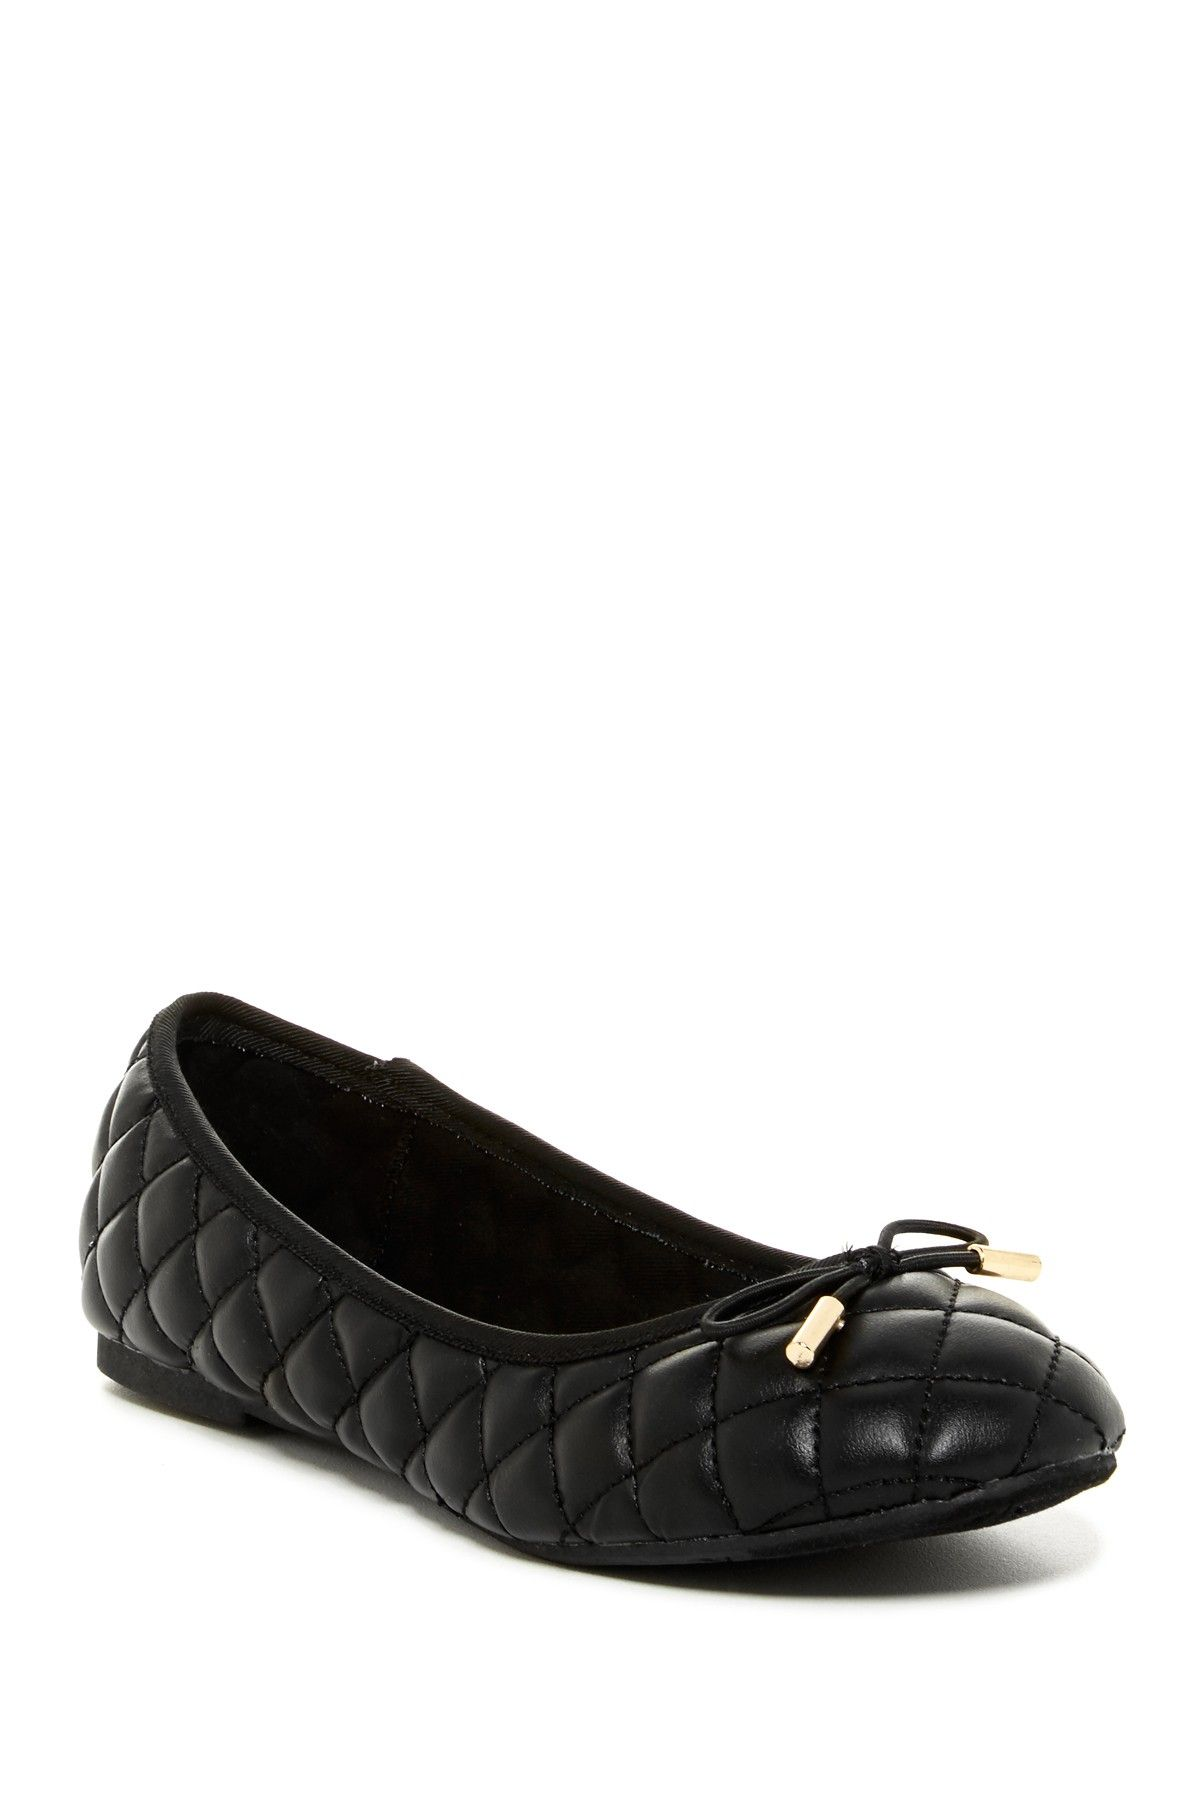 Merlyn Quilted Flat by Report on @nordstrom_rack Sponsored by Nordstrom Rack.